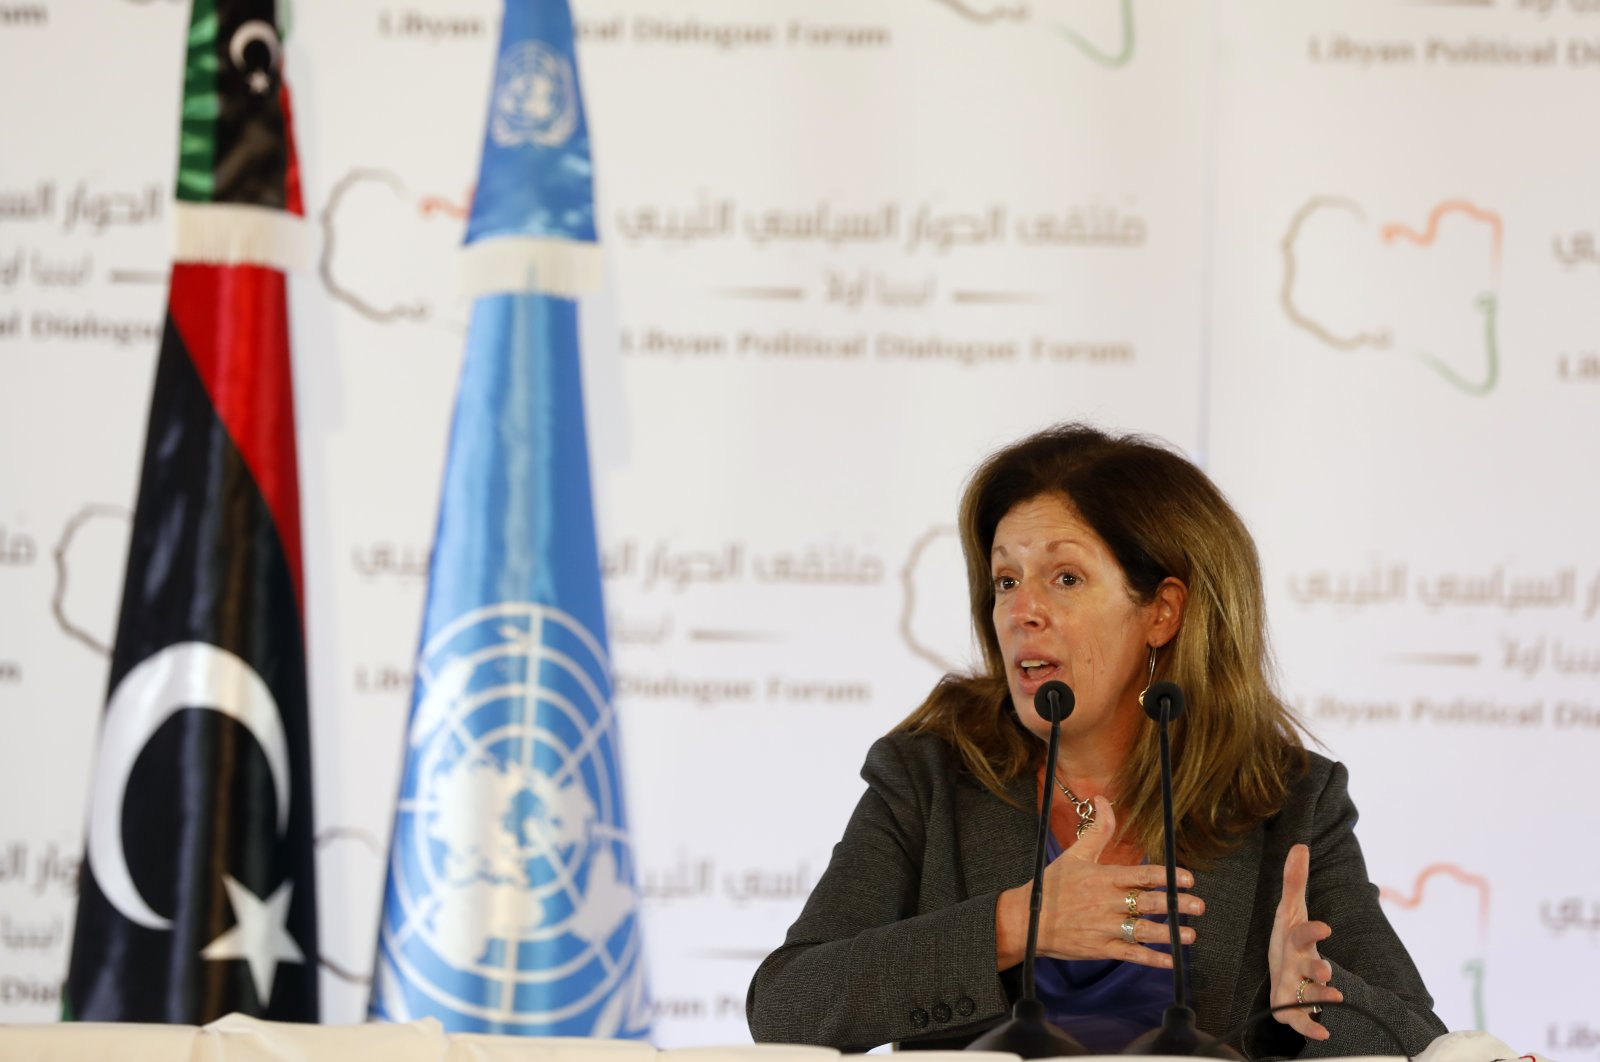 Stephanie Williams, the acting special representative of the United Nations secretary-general and head of the U.N. Support Mission in Libya, speaks during a news conference in Tunis, Tunisia, Nov. 15, 2020. (AP Photo)